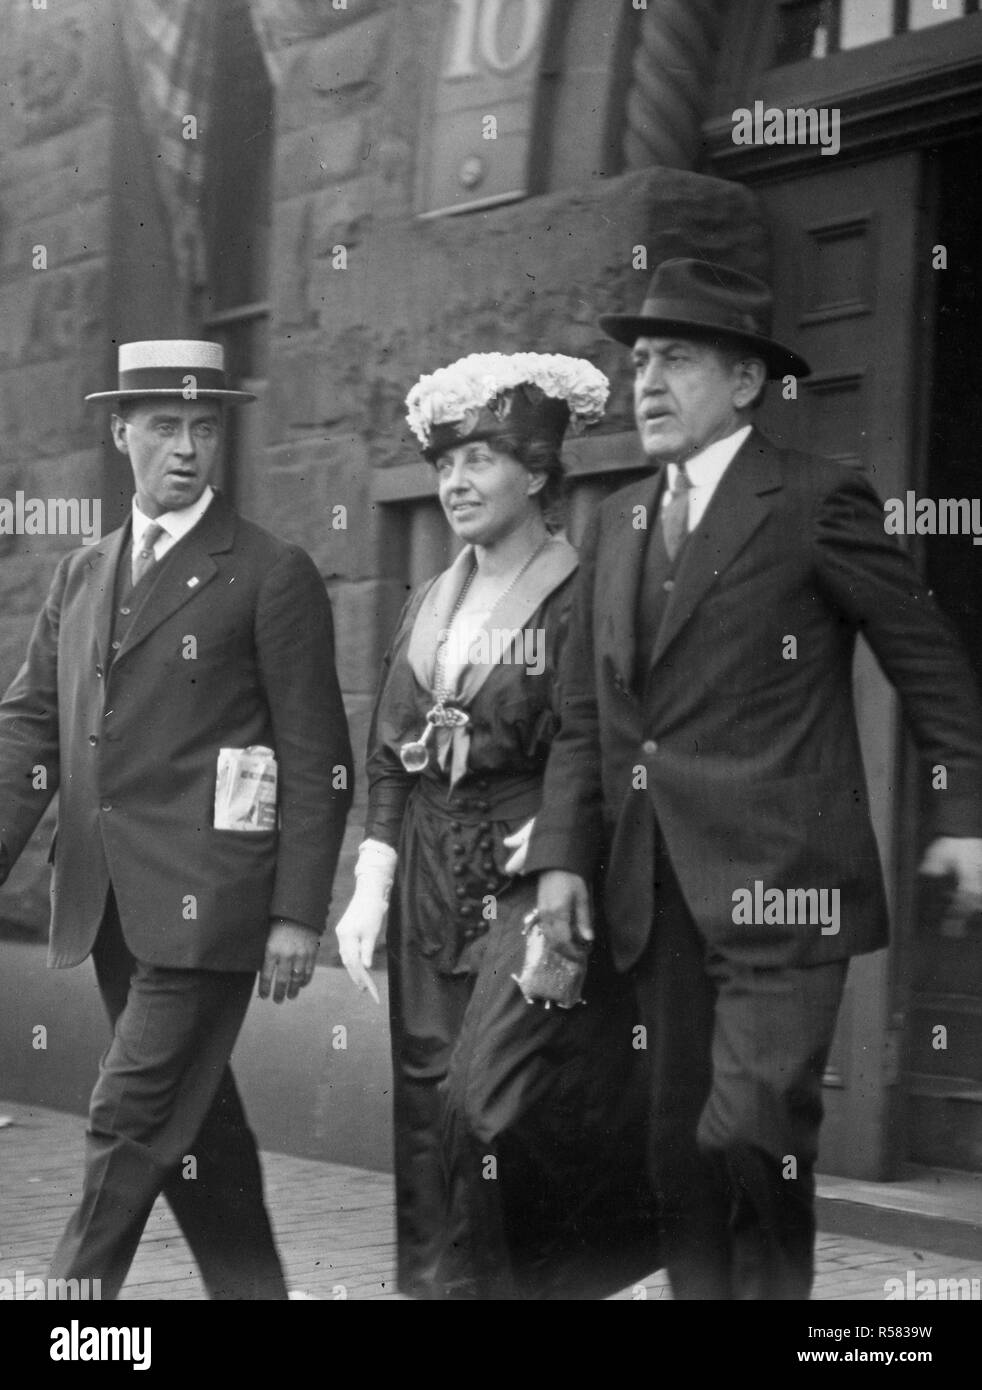 Arrest of Alien Enemies in U.S.A. - Mrs. Carl Muck, wife of the former leader of the Boston Symphony Orchestra after registering as an alien enemy ca. 1918 - Stock Image